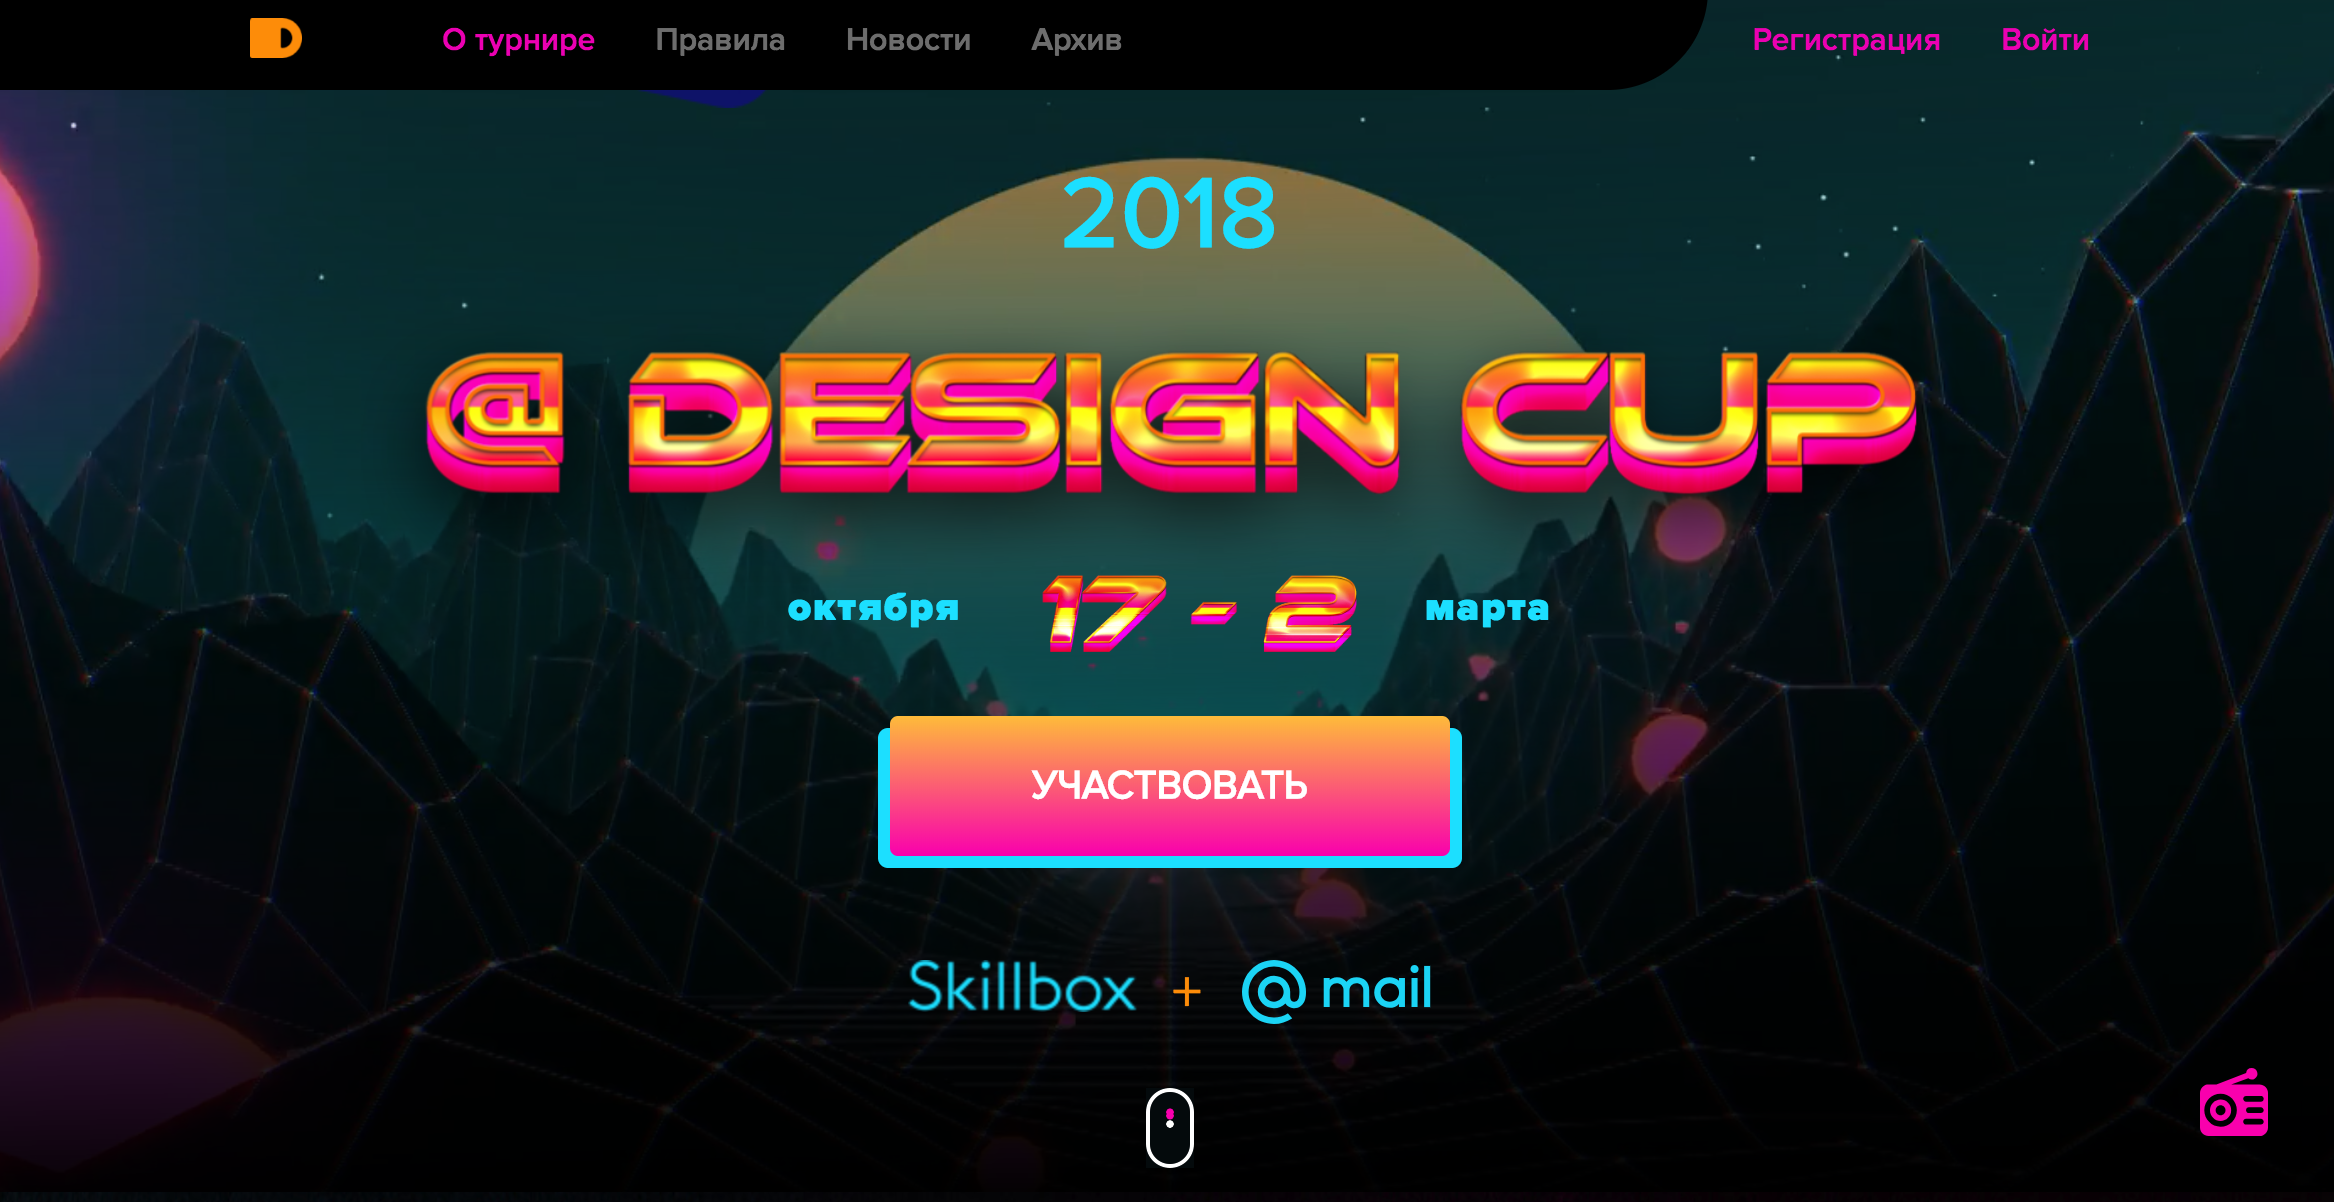 Mail.Ru Group, together with Skillbox opened a competition for designers with a MacBook Pro and iPad Pro as prizes